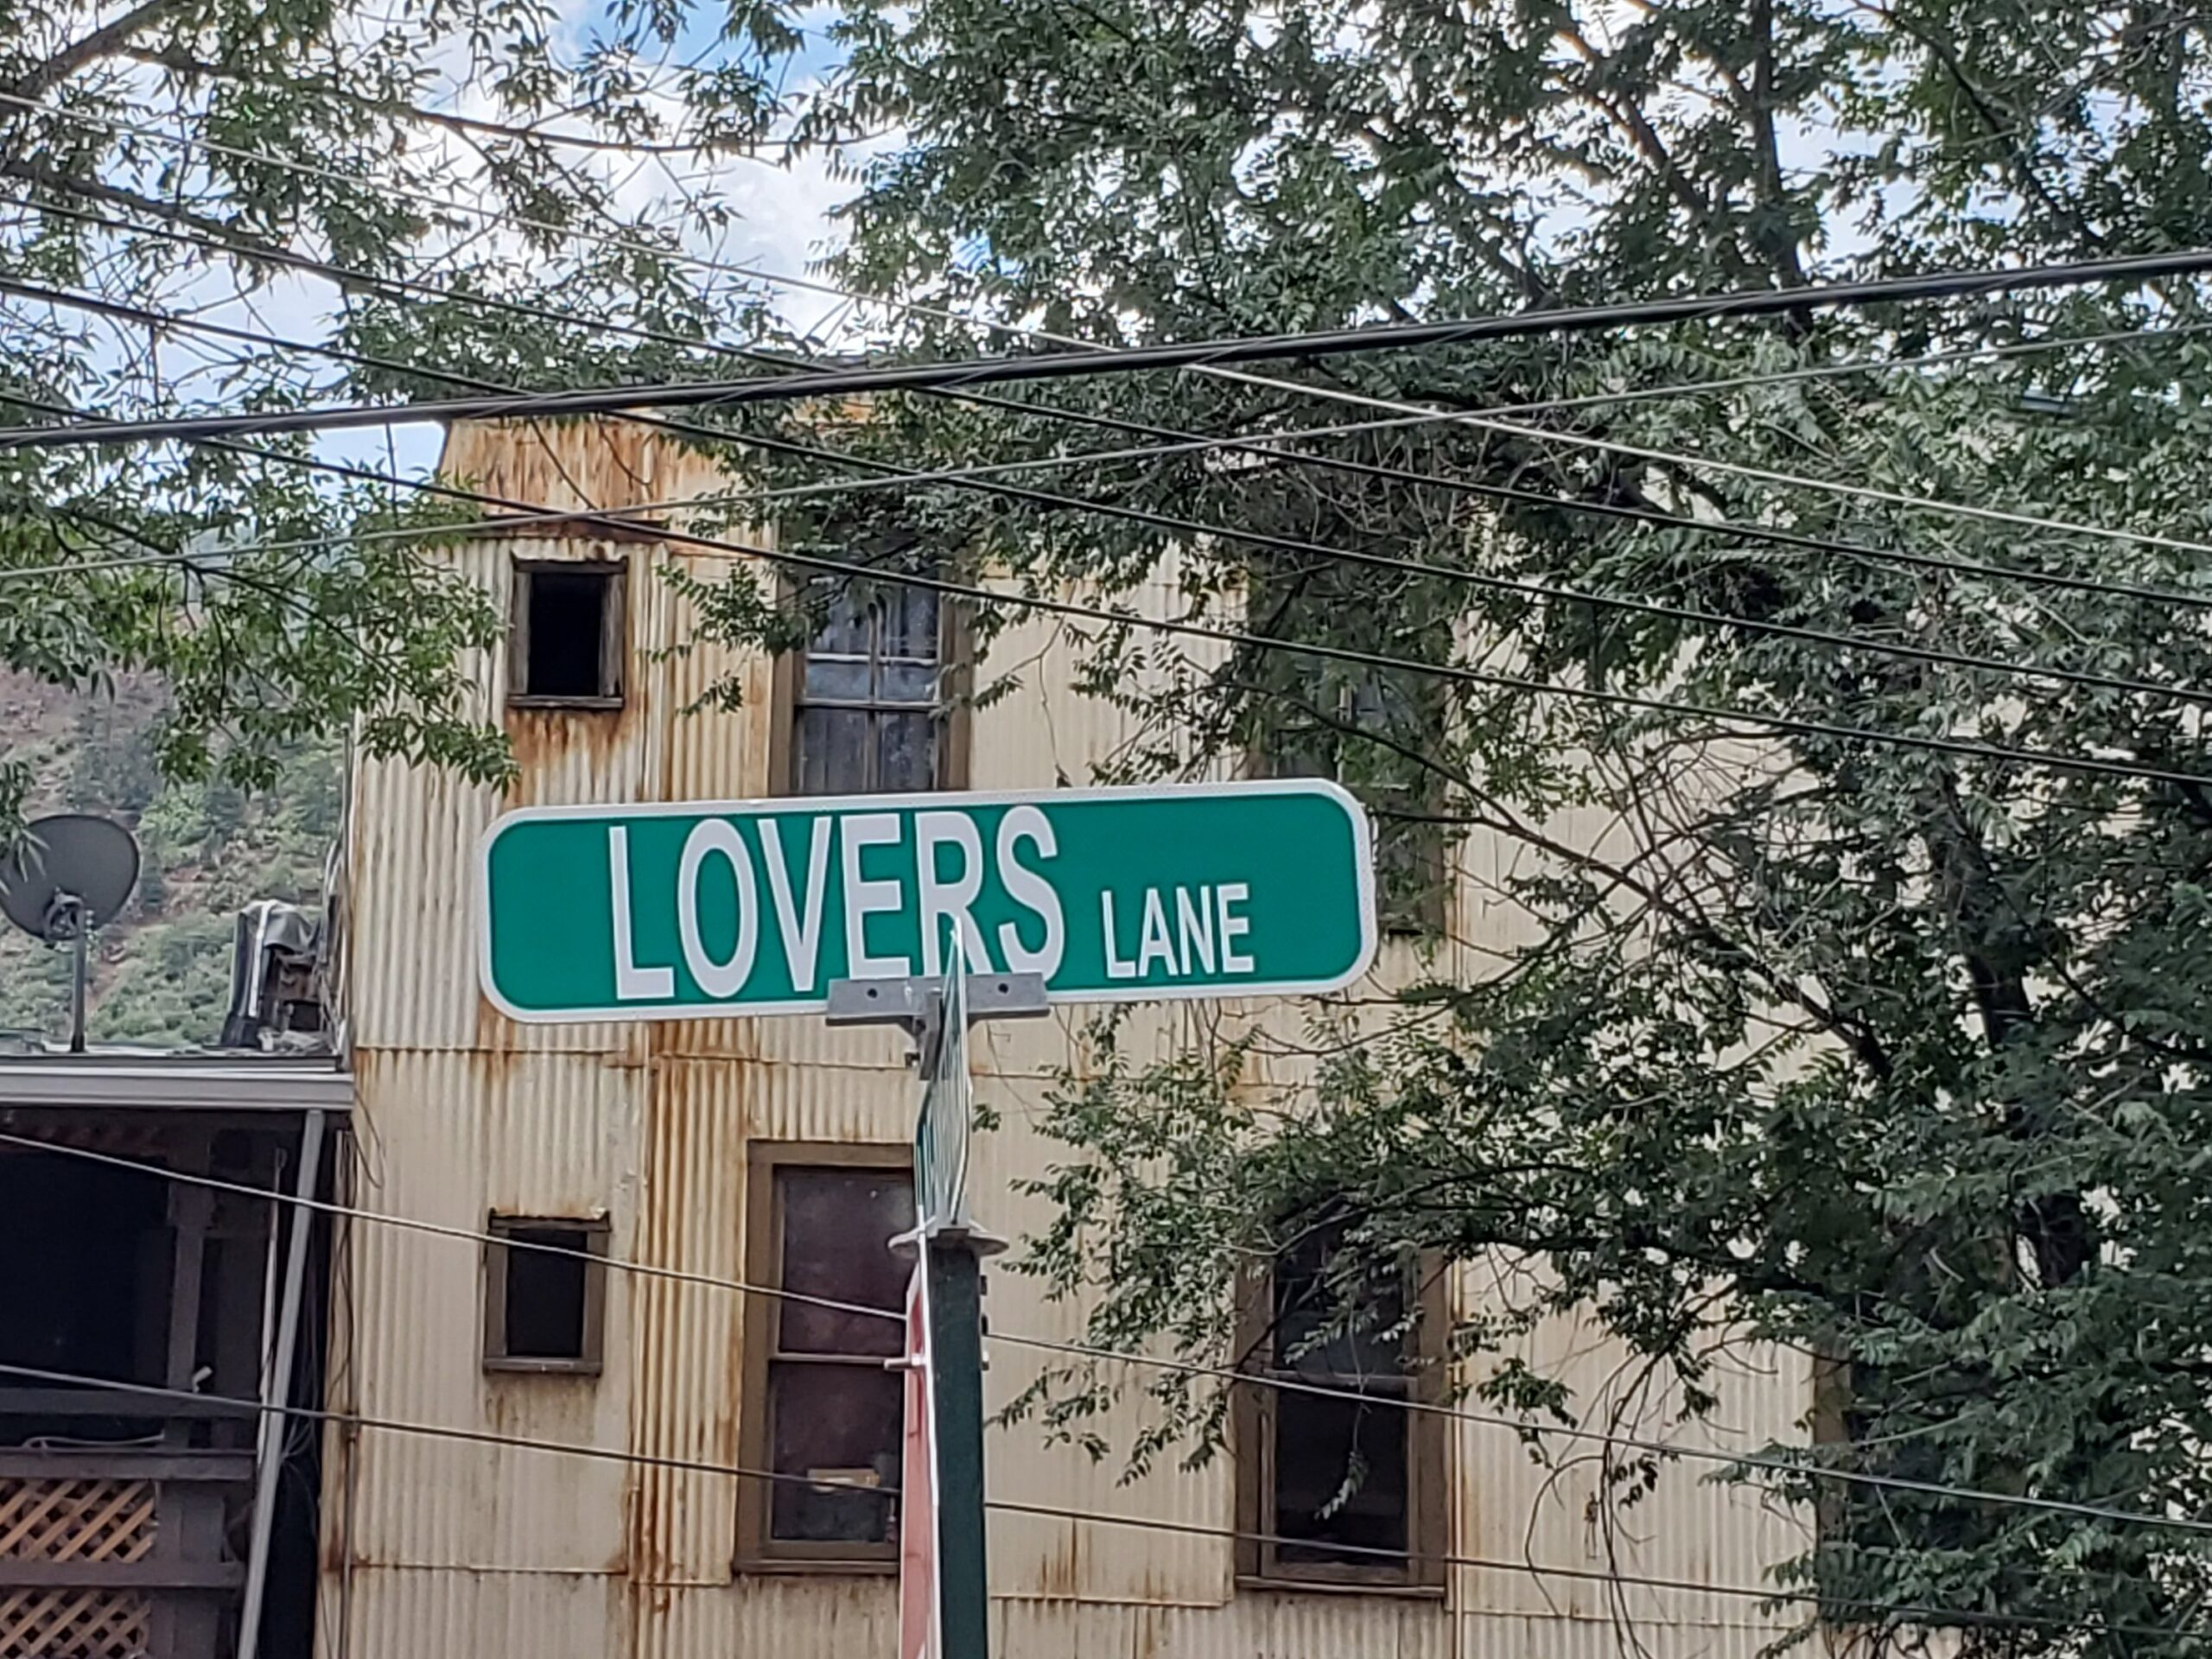 Lovers Lane Street Sign